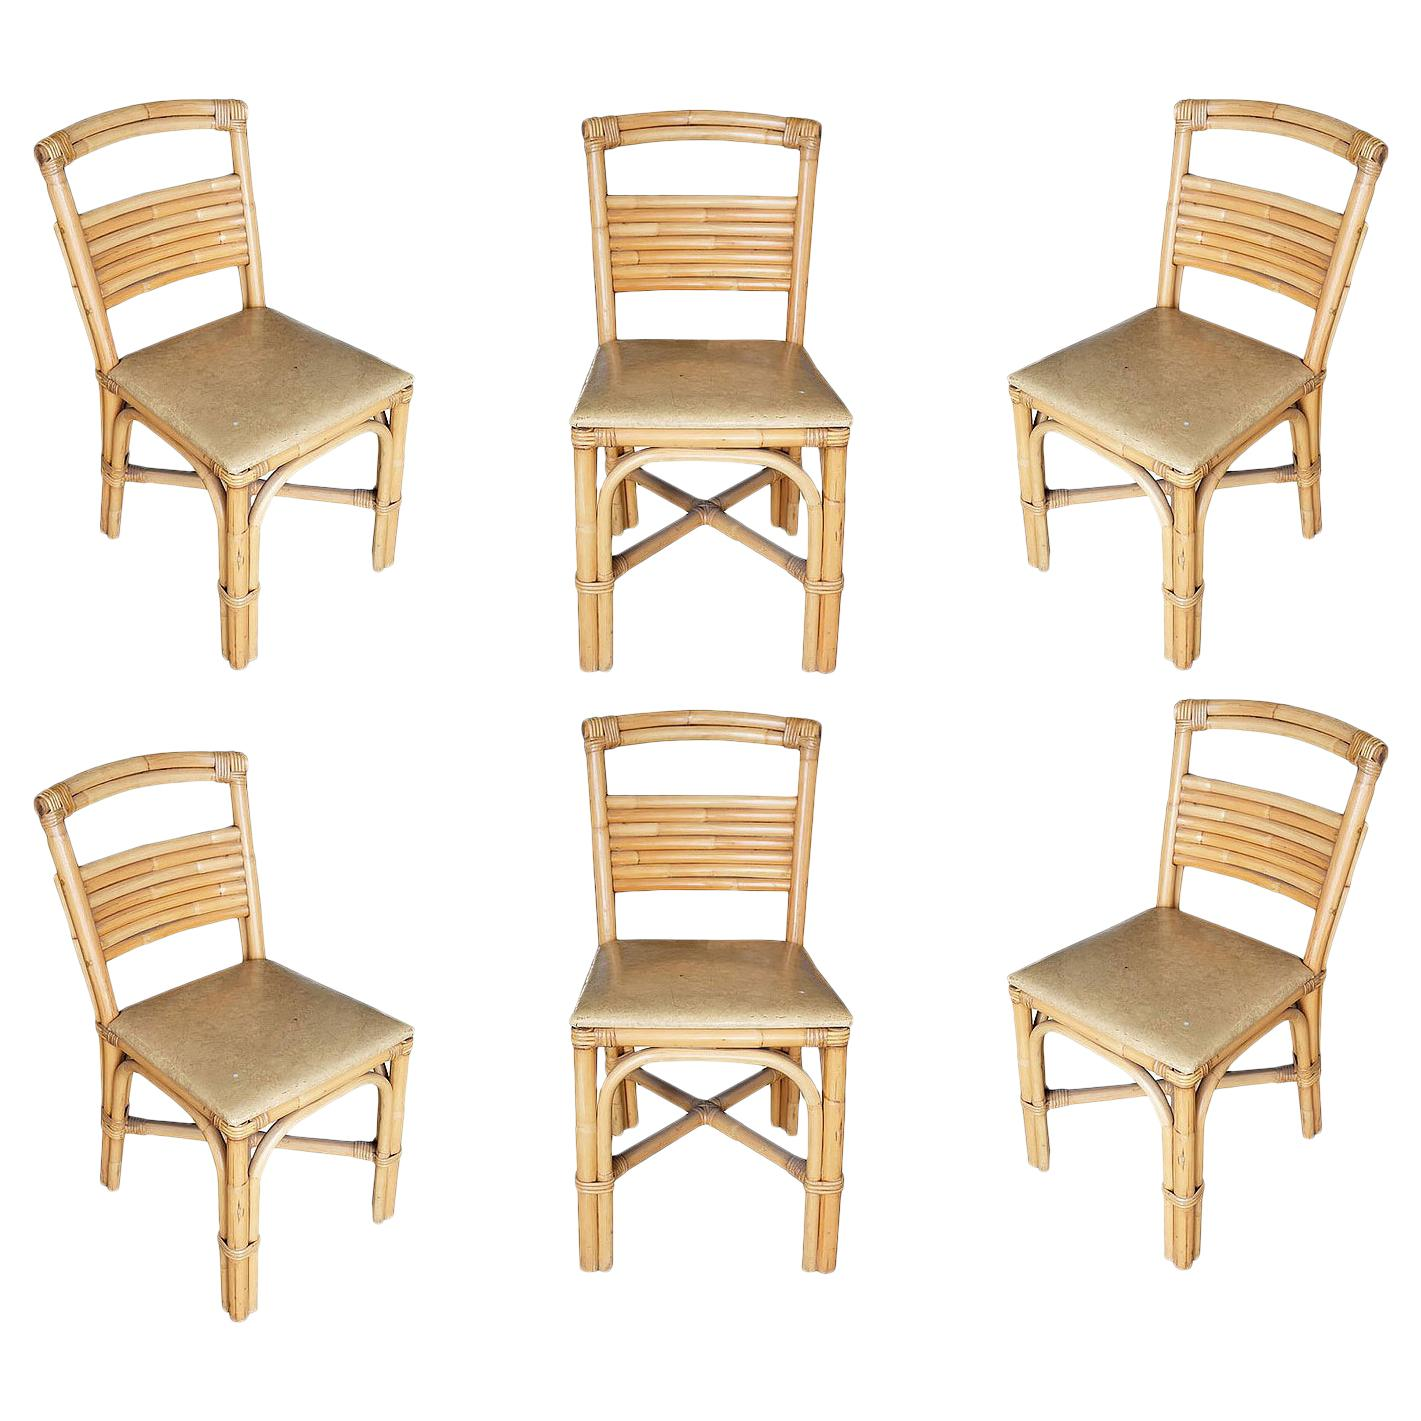 Restored Slat Legs and Back Rattan Dining Chair, Set of Six